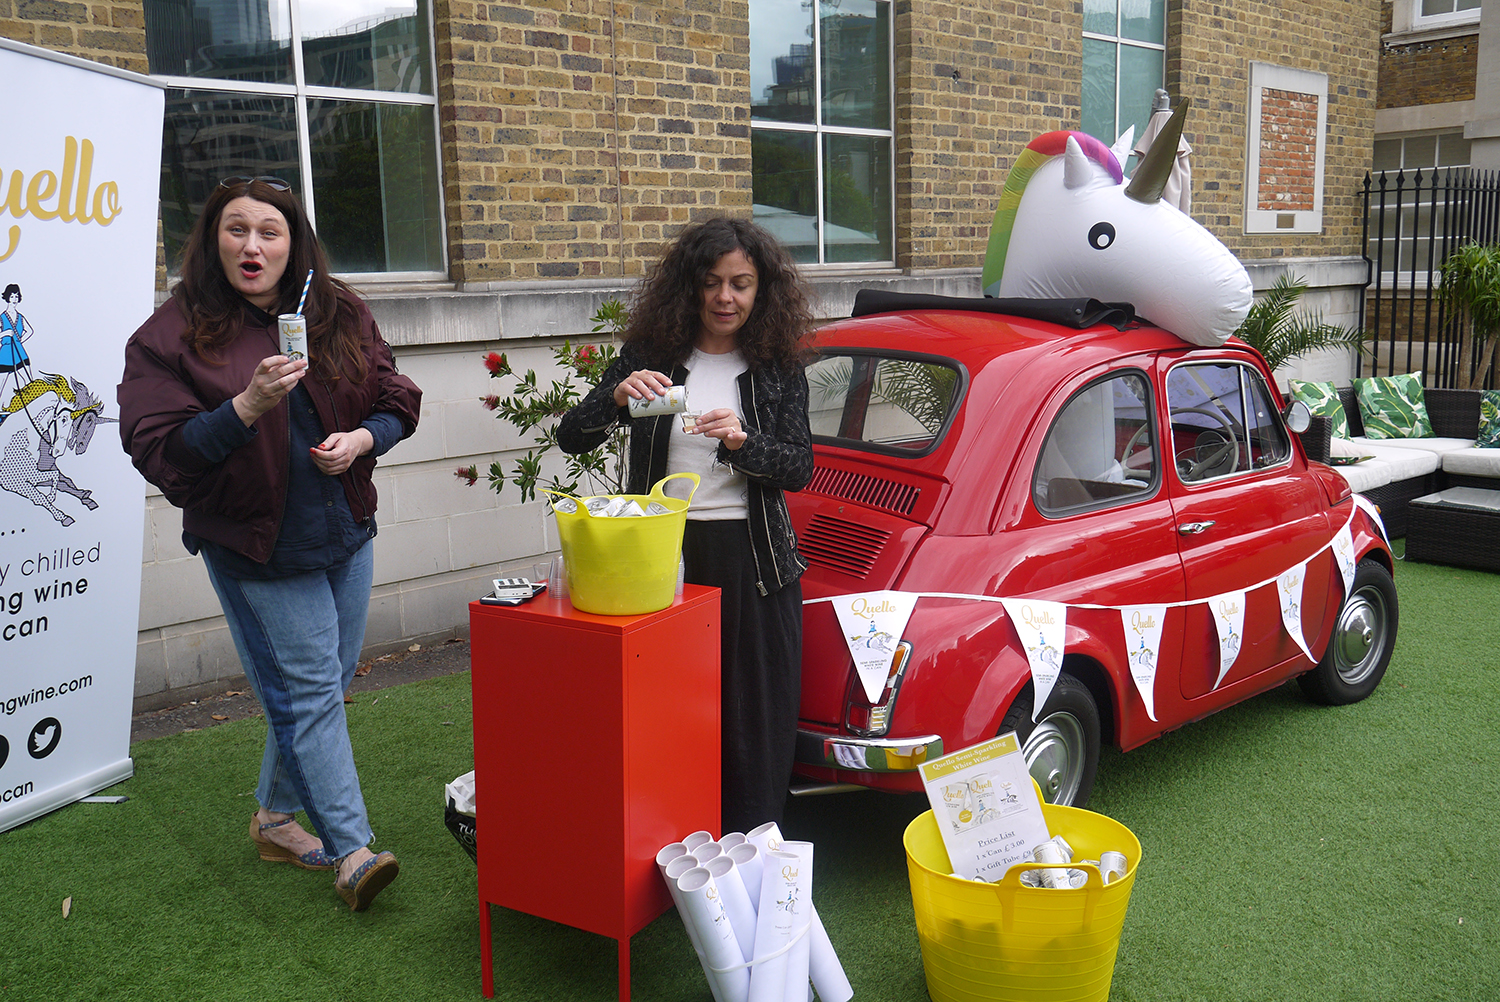 Roberta Sergio, founder of Quello (and East-London legend) pouring her delicious sparkling wine with the help of her Cinquecento and faithful unicorn